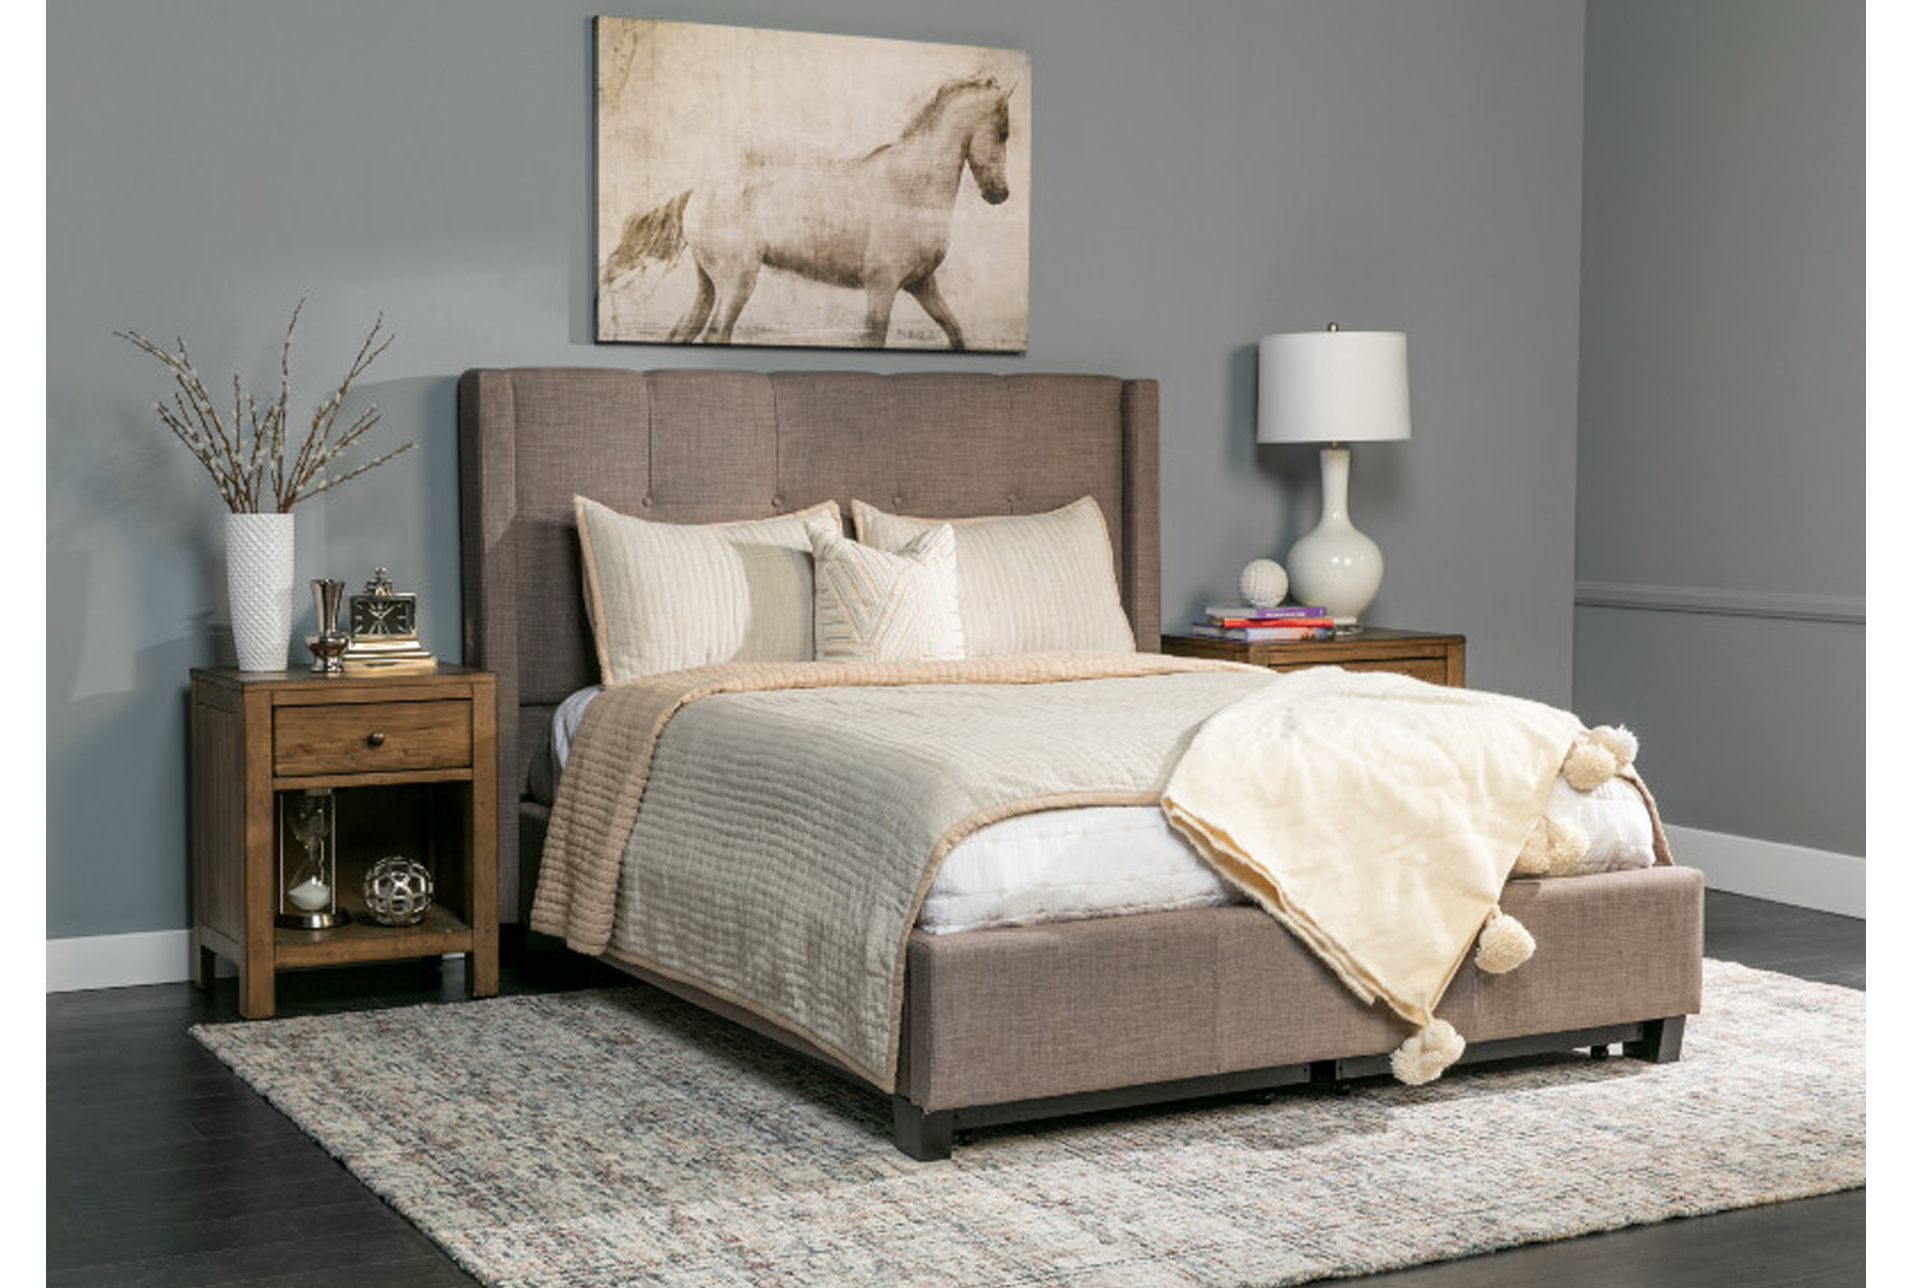 Delicieux Damon Stone Full Headboard Upholstered Platform Bed (Qty: 1) Has Been  Successfully Added To Your Cart.